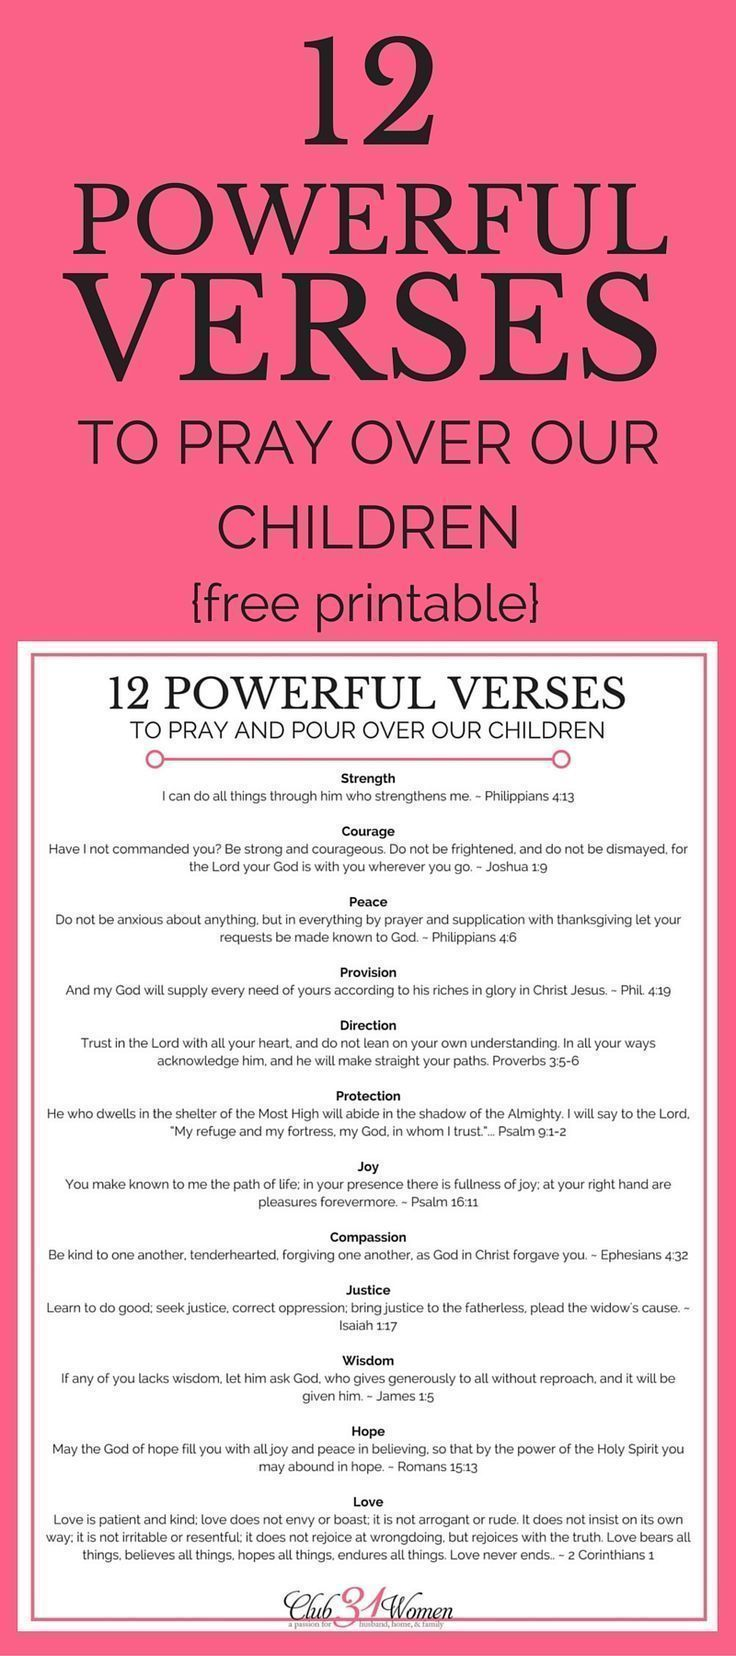 """Whether you're a """"seasoned"""" parent or a brand-new one, what you pray will have a powerful impact on your kids - both now and for the rest of their lives. Here are 12 inspiring and encouraging verses to pray over your children!"""